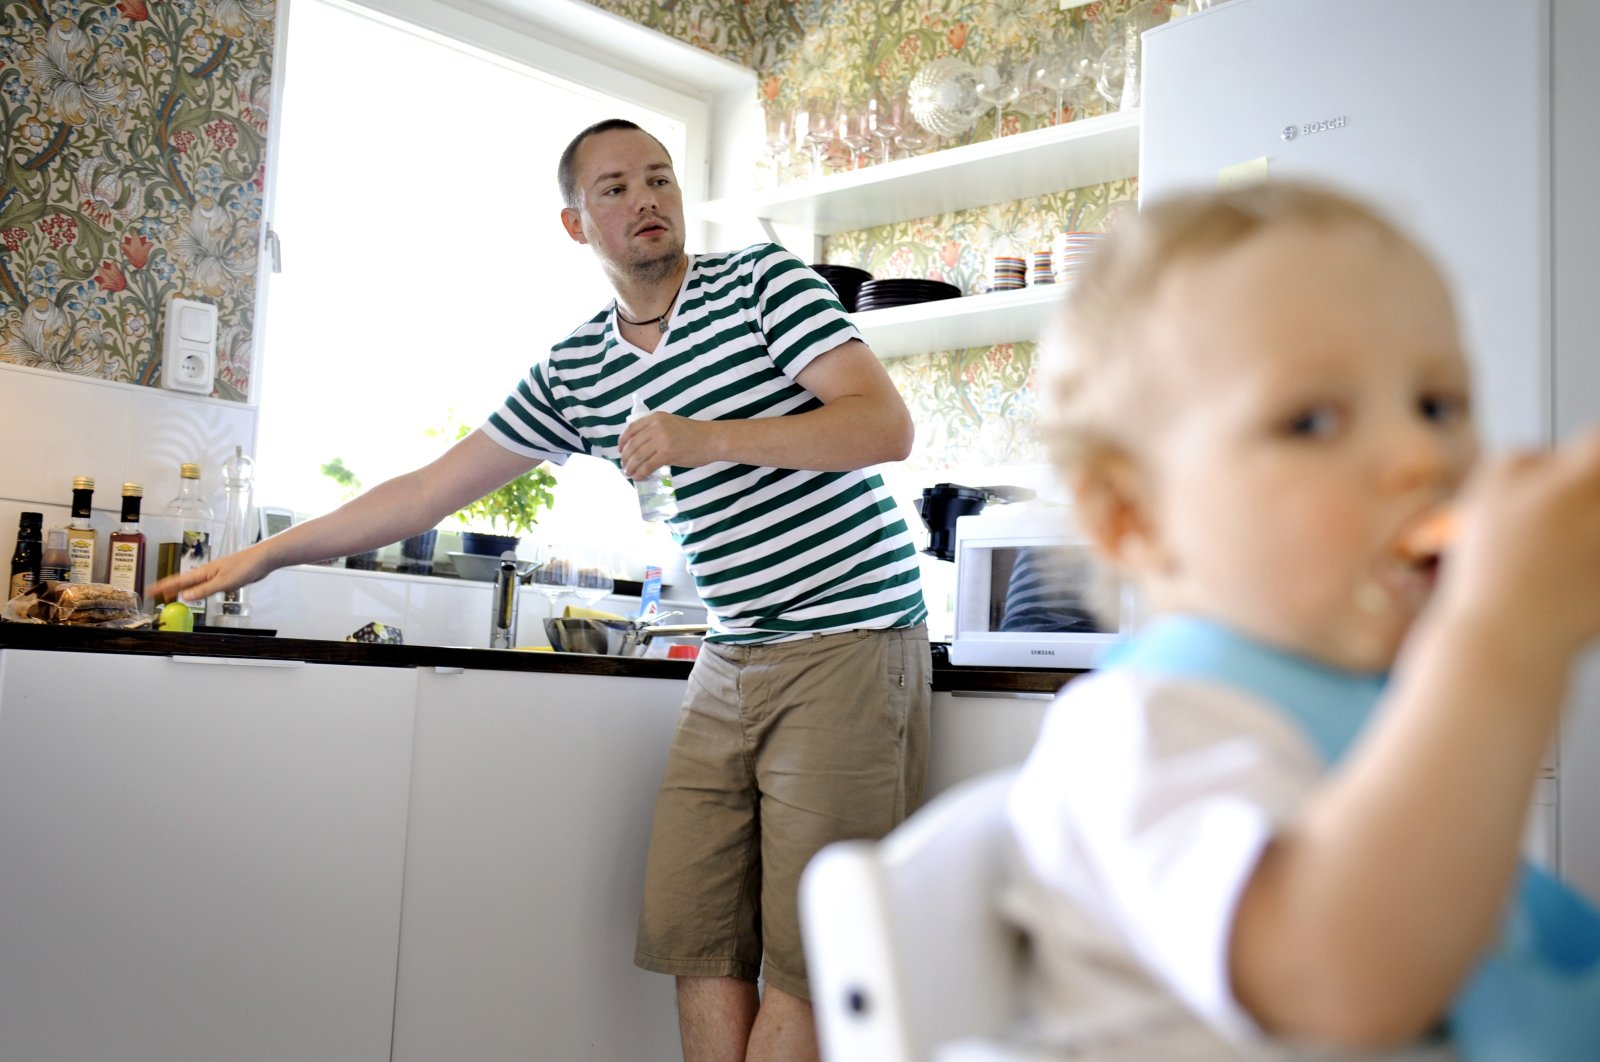 Henrik Holgersson cares for his son, Arvid, in the kitchen of their home in Stockholm, June 29, 2011. (AP Photo)